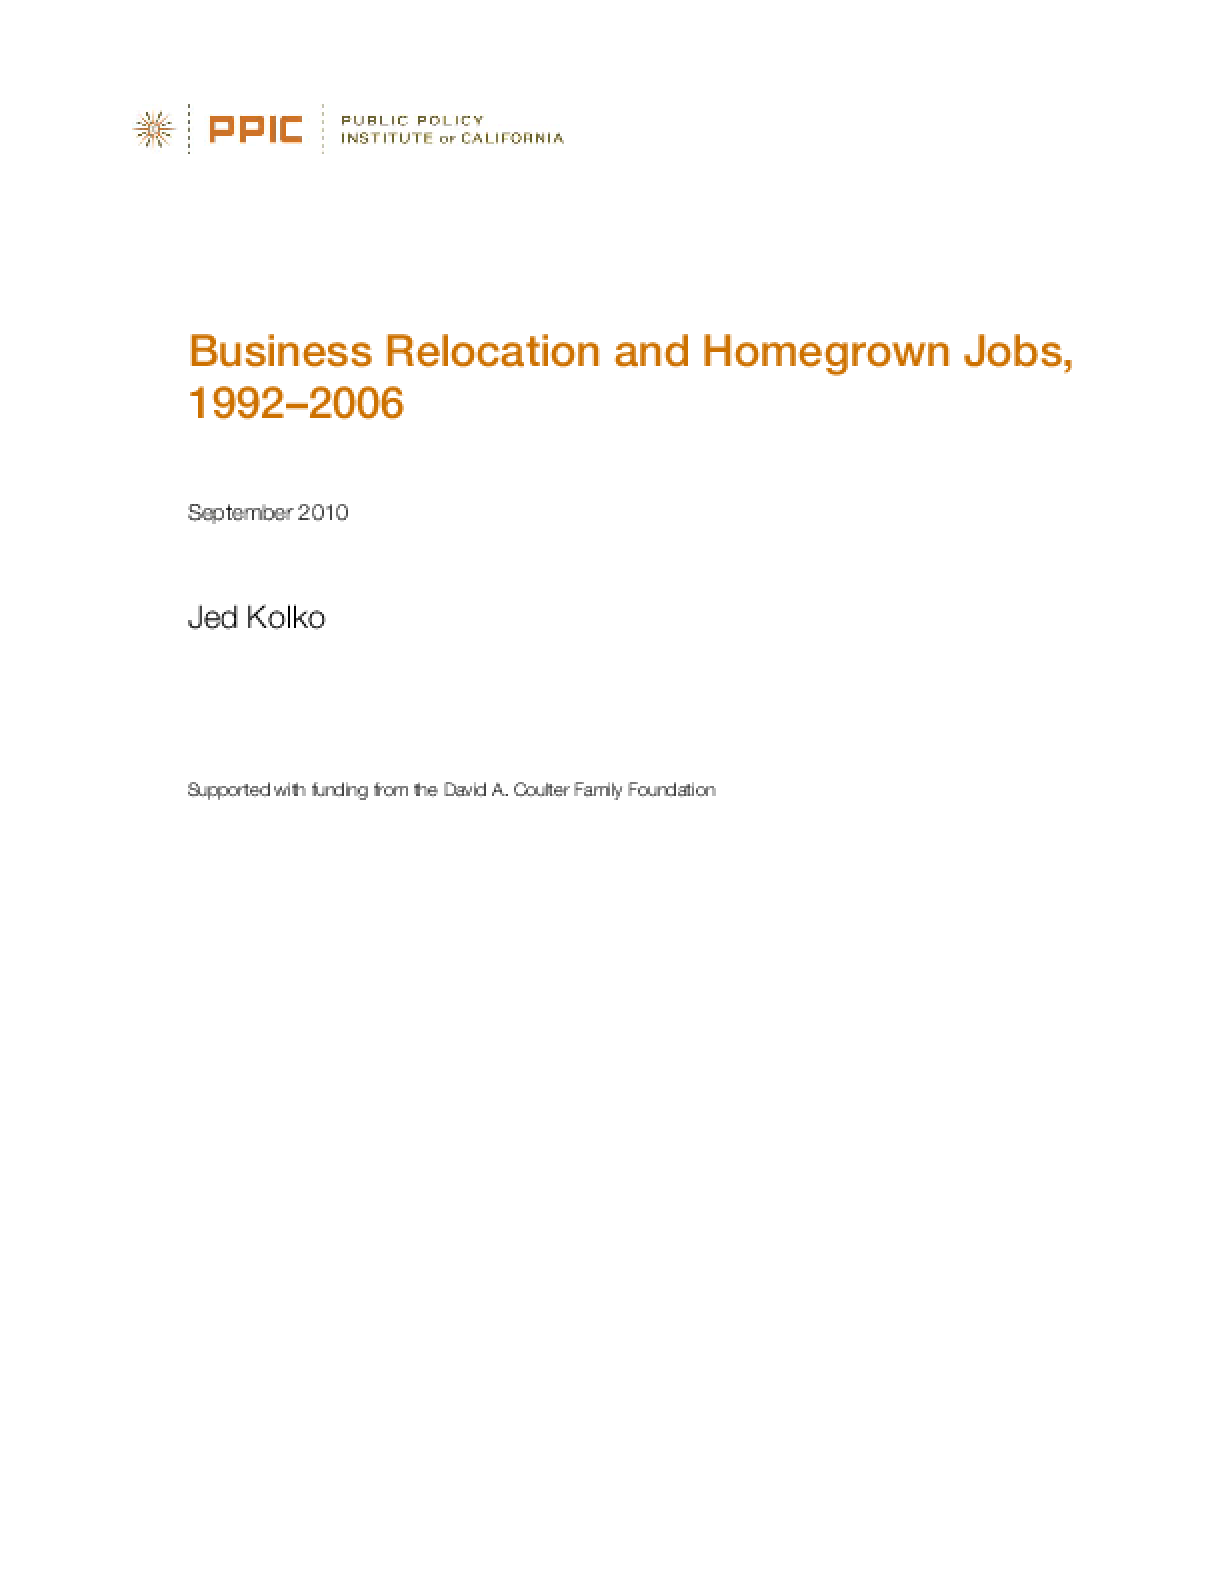 Business Relocation and Homegrown Jobs, 1992-2006